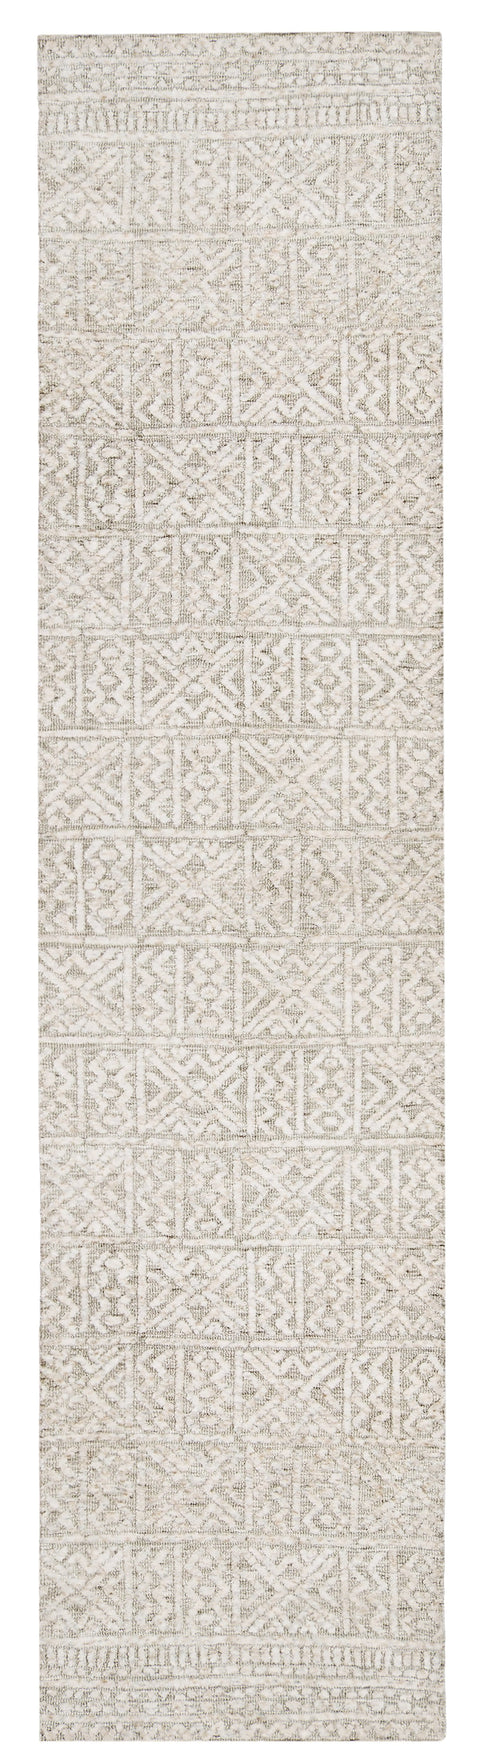 Melia Grey and Ivory Tribal Textured Runner Rug